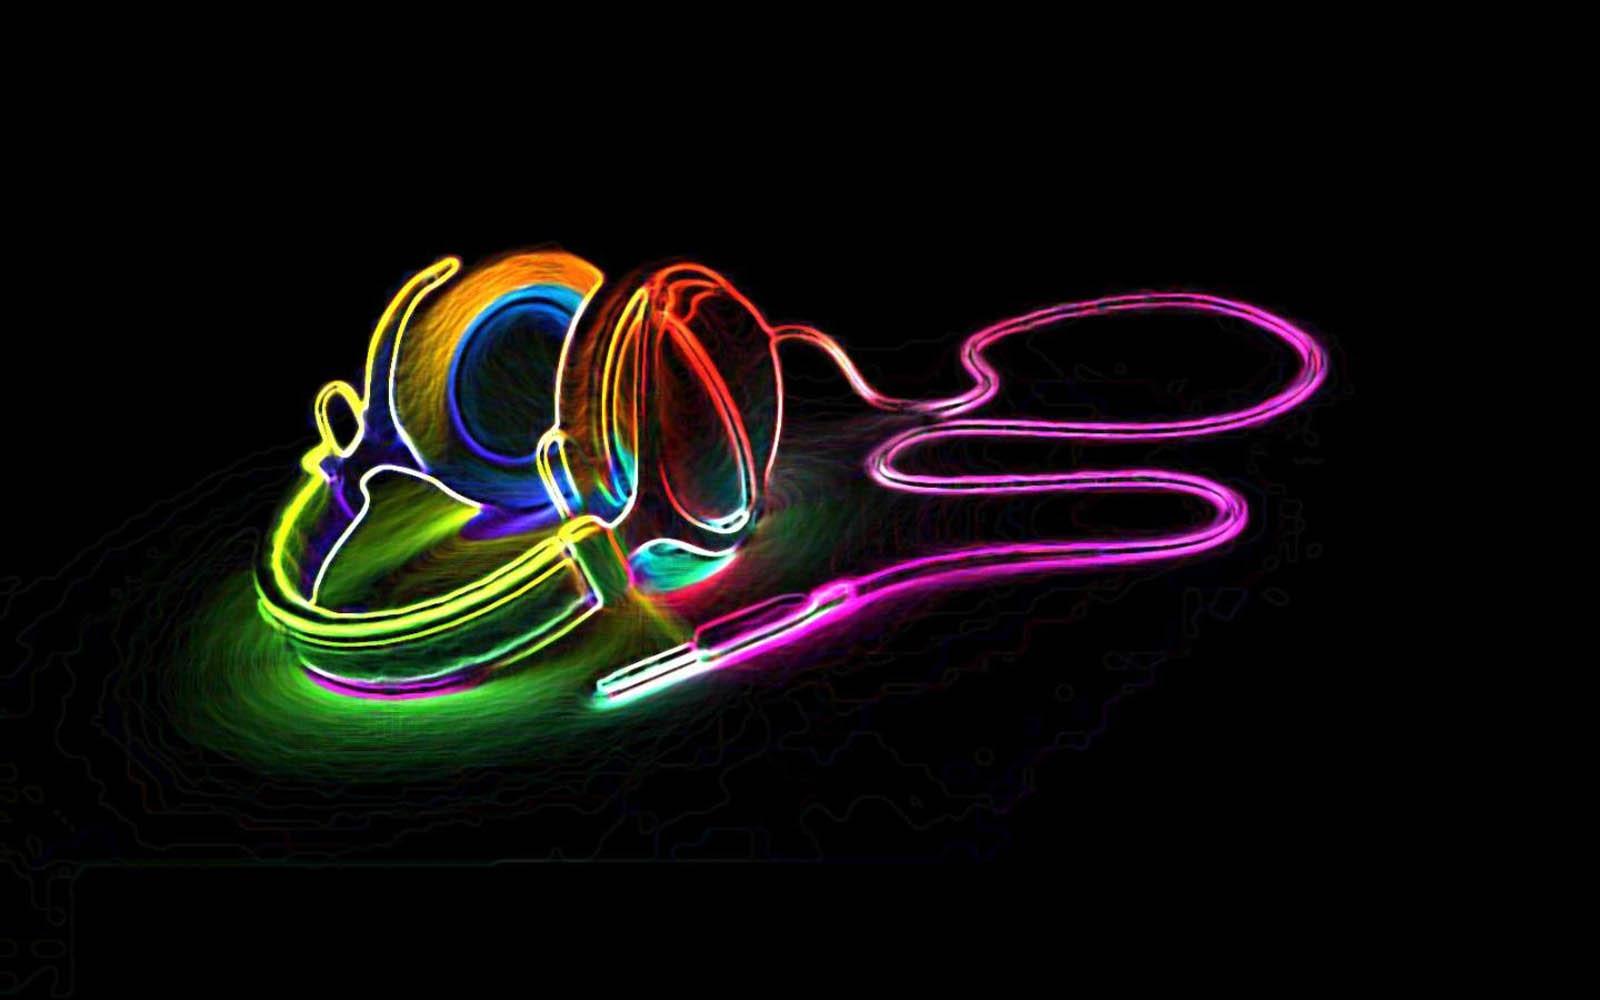 wallpapers: Neon Art Wallpapers